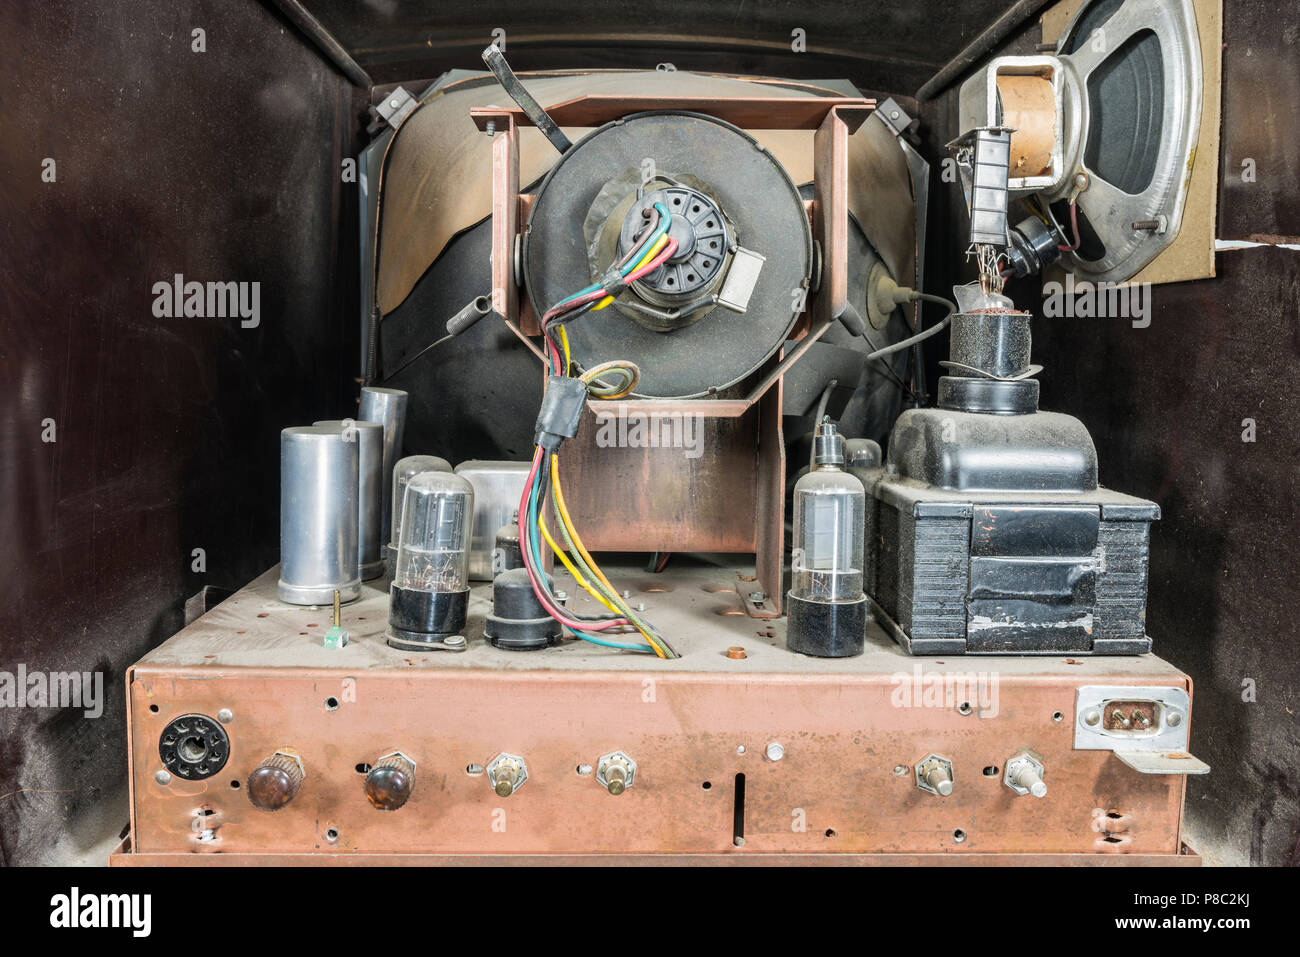 Tv Wiring 1950s Great Installation Of Diagram A Home For Satellite View Inside Dirty Grungy Vintage Tube Television Set Stock Rh Alamy Com Stereo